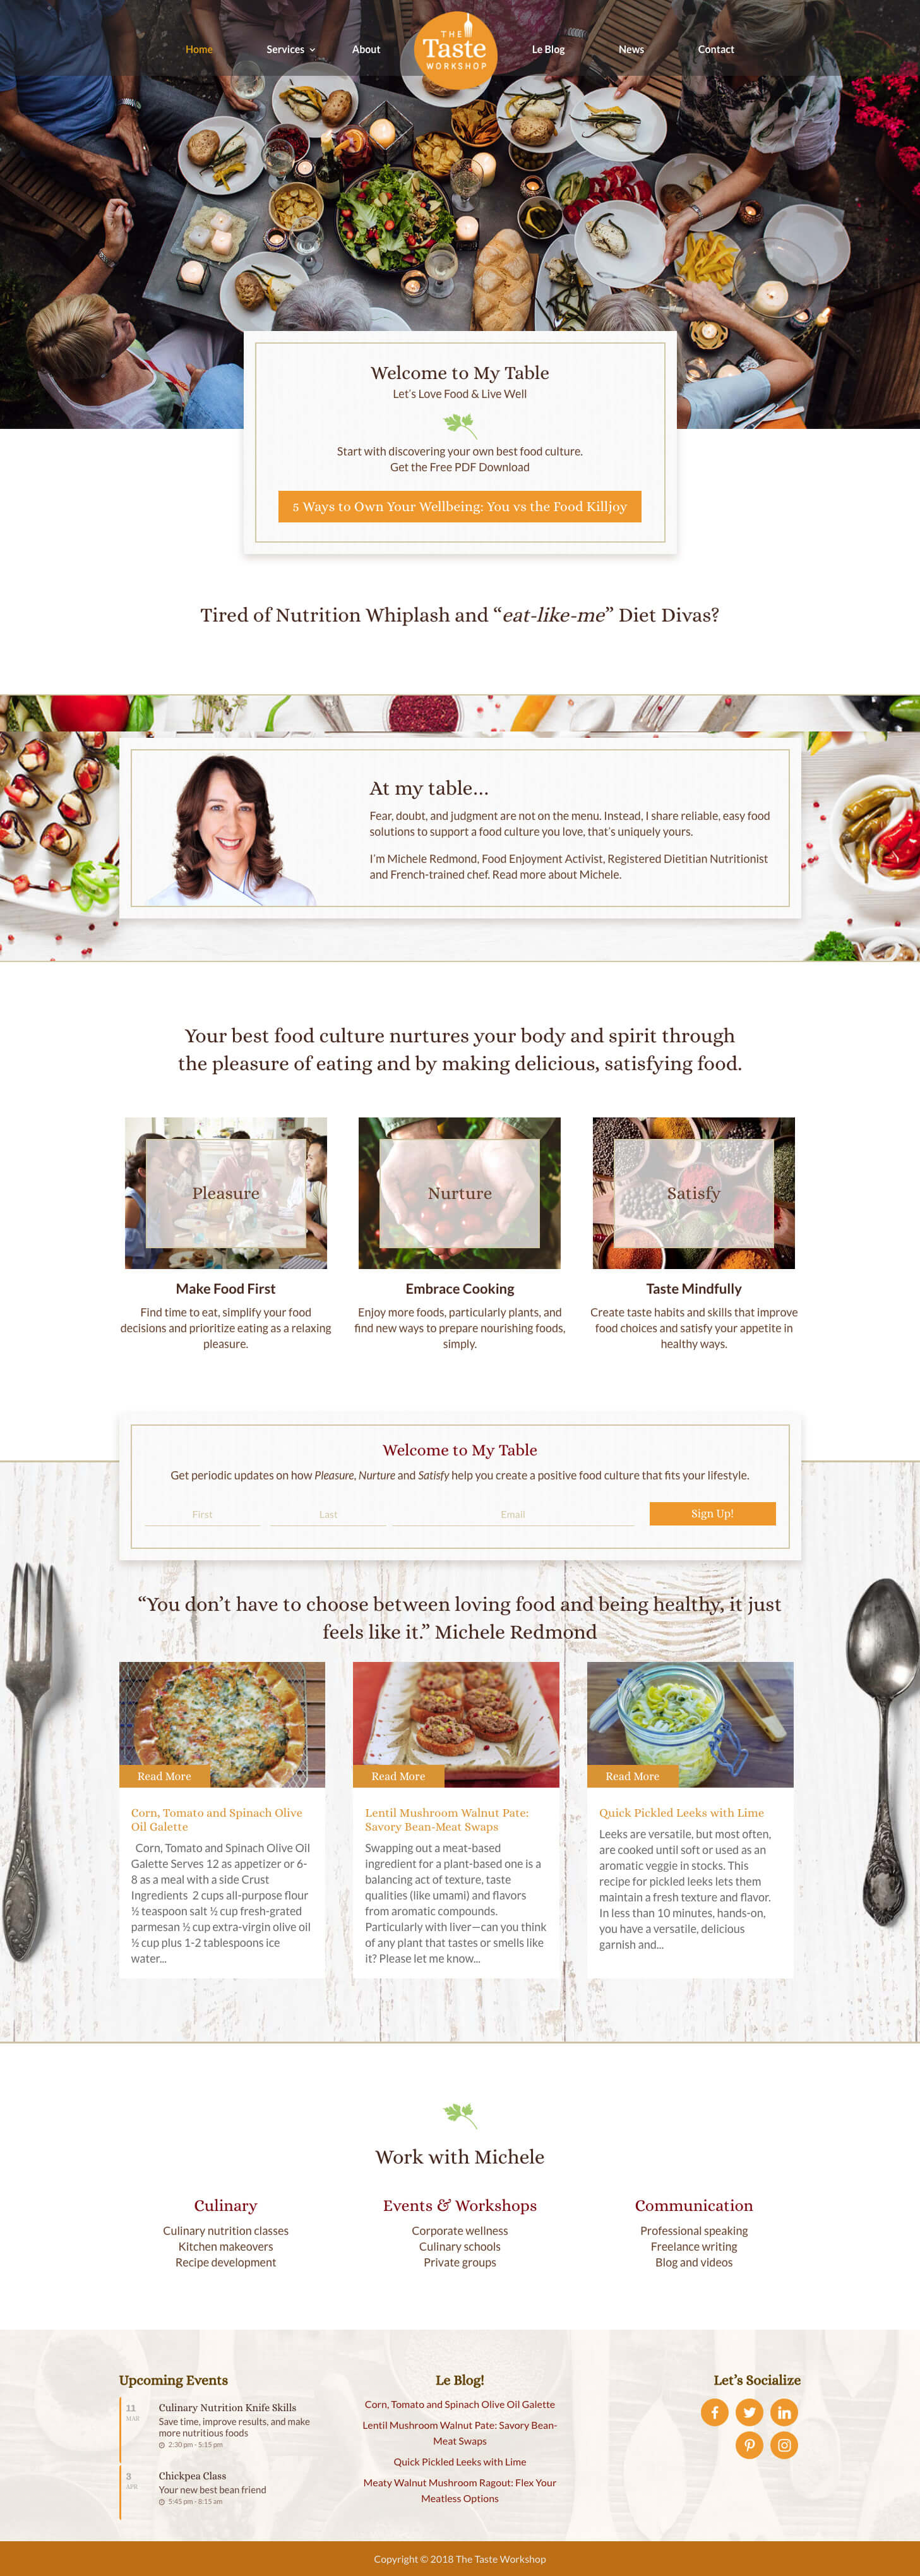 the taste workshop web design concept